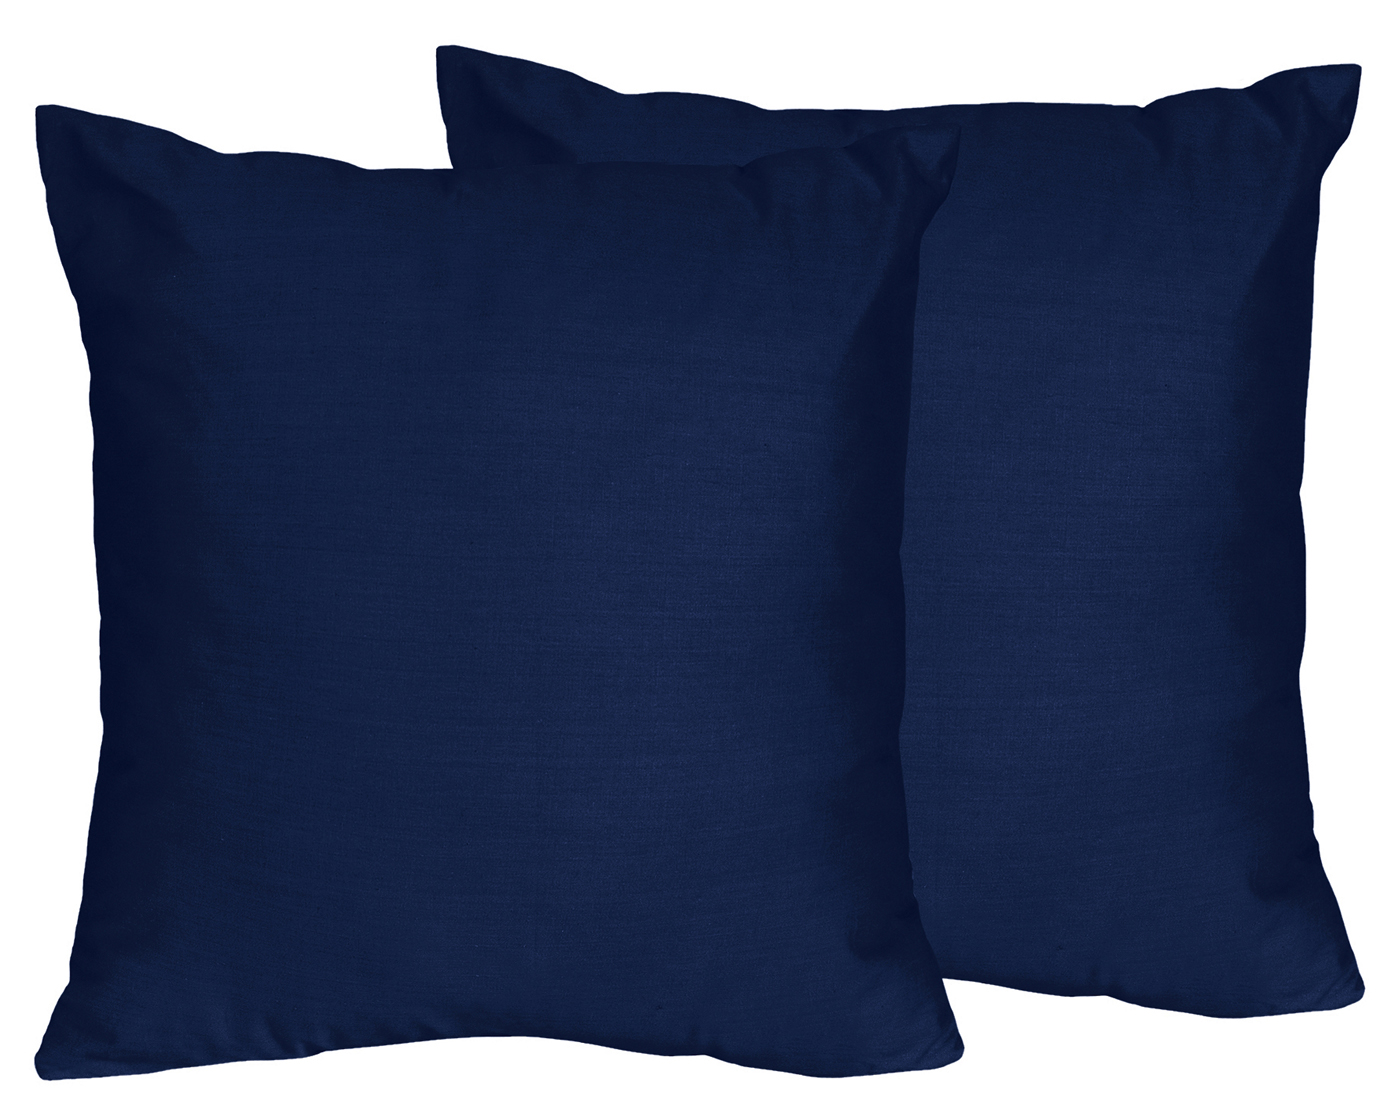 Navy Blue Decorative Bed Pillows: Set Of 2 Navy Blue Decorative Accent Throw Pillow Sweet